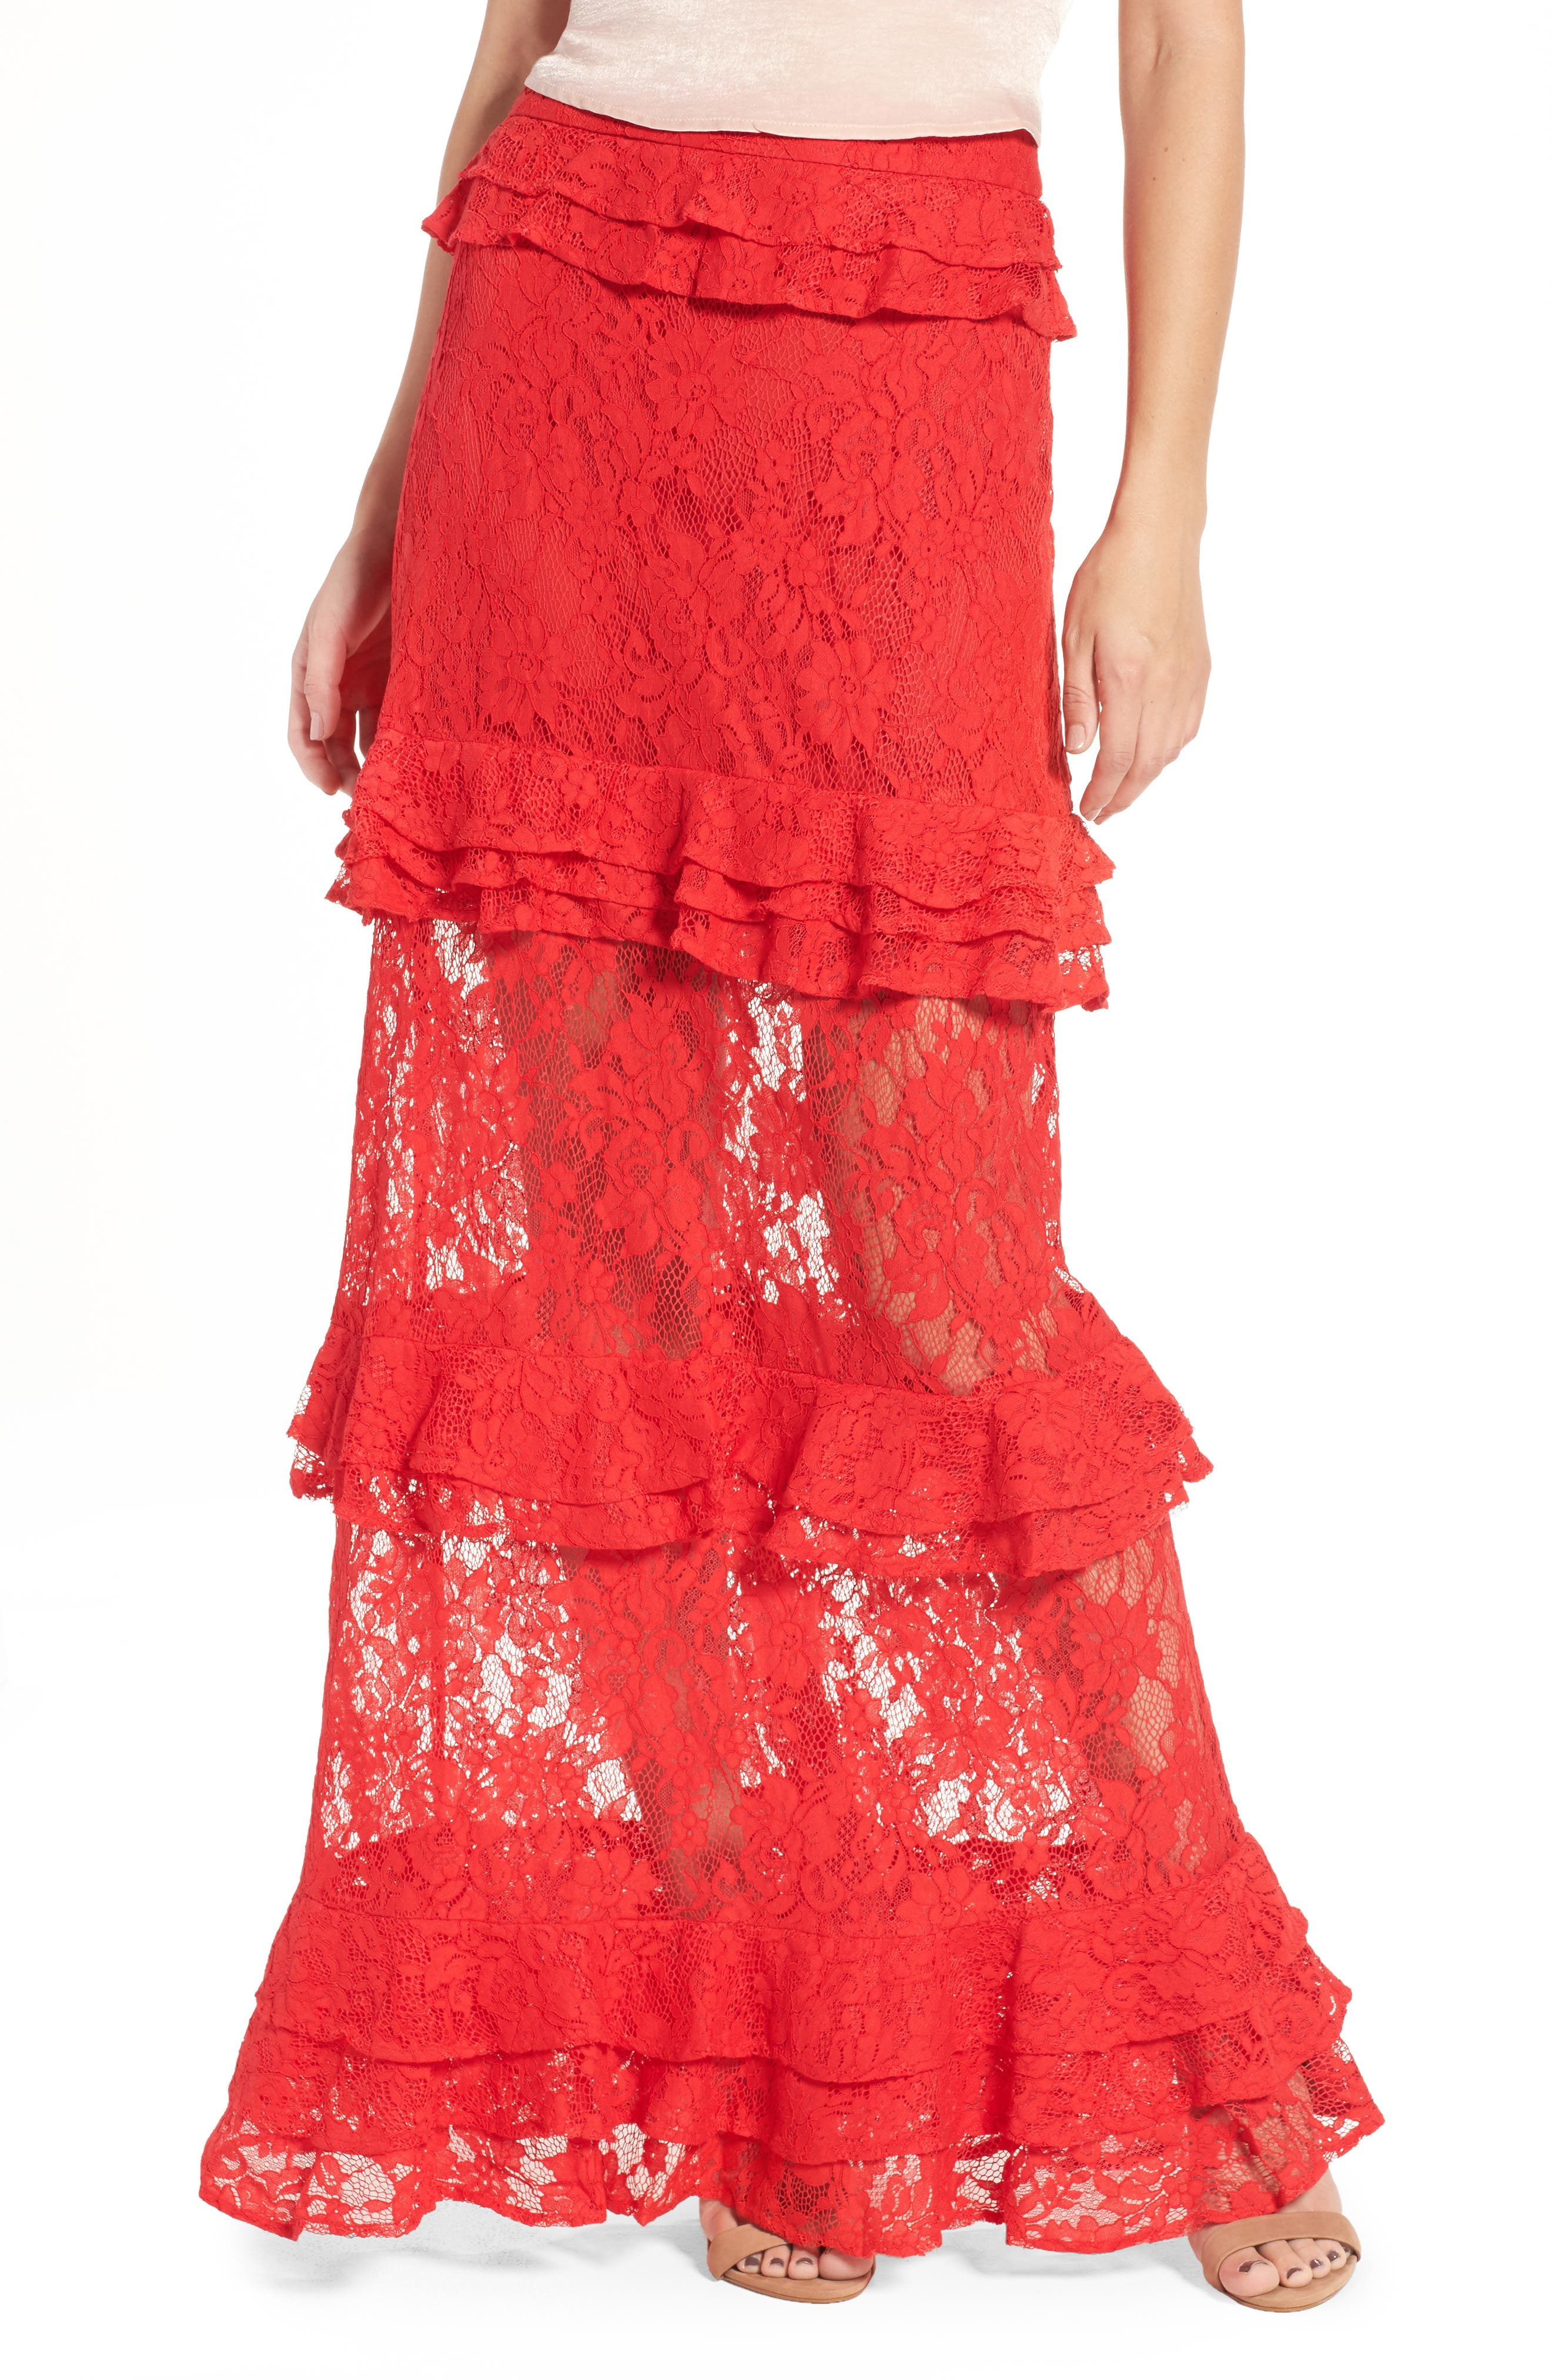 Alternate Image 1 Selected - AFRM Otis Ruffle Maxi Skirt